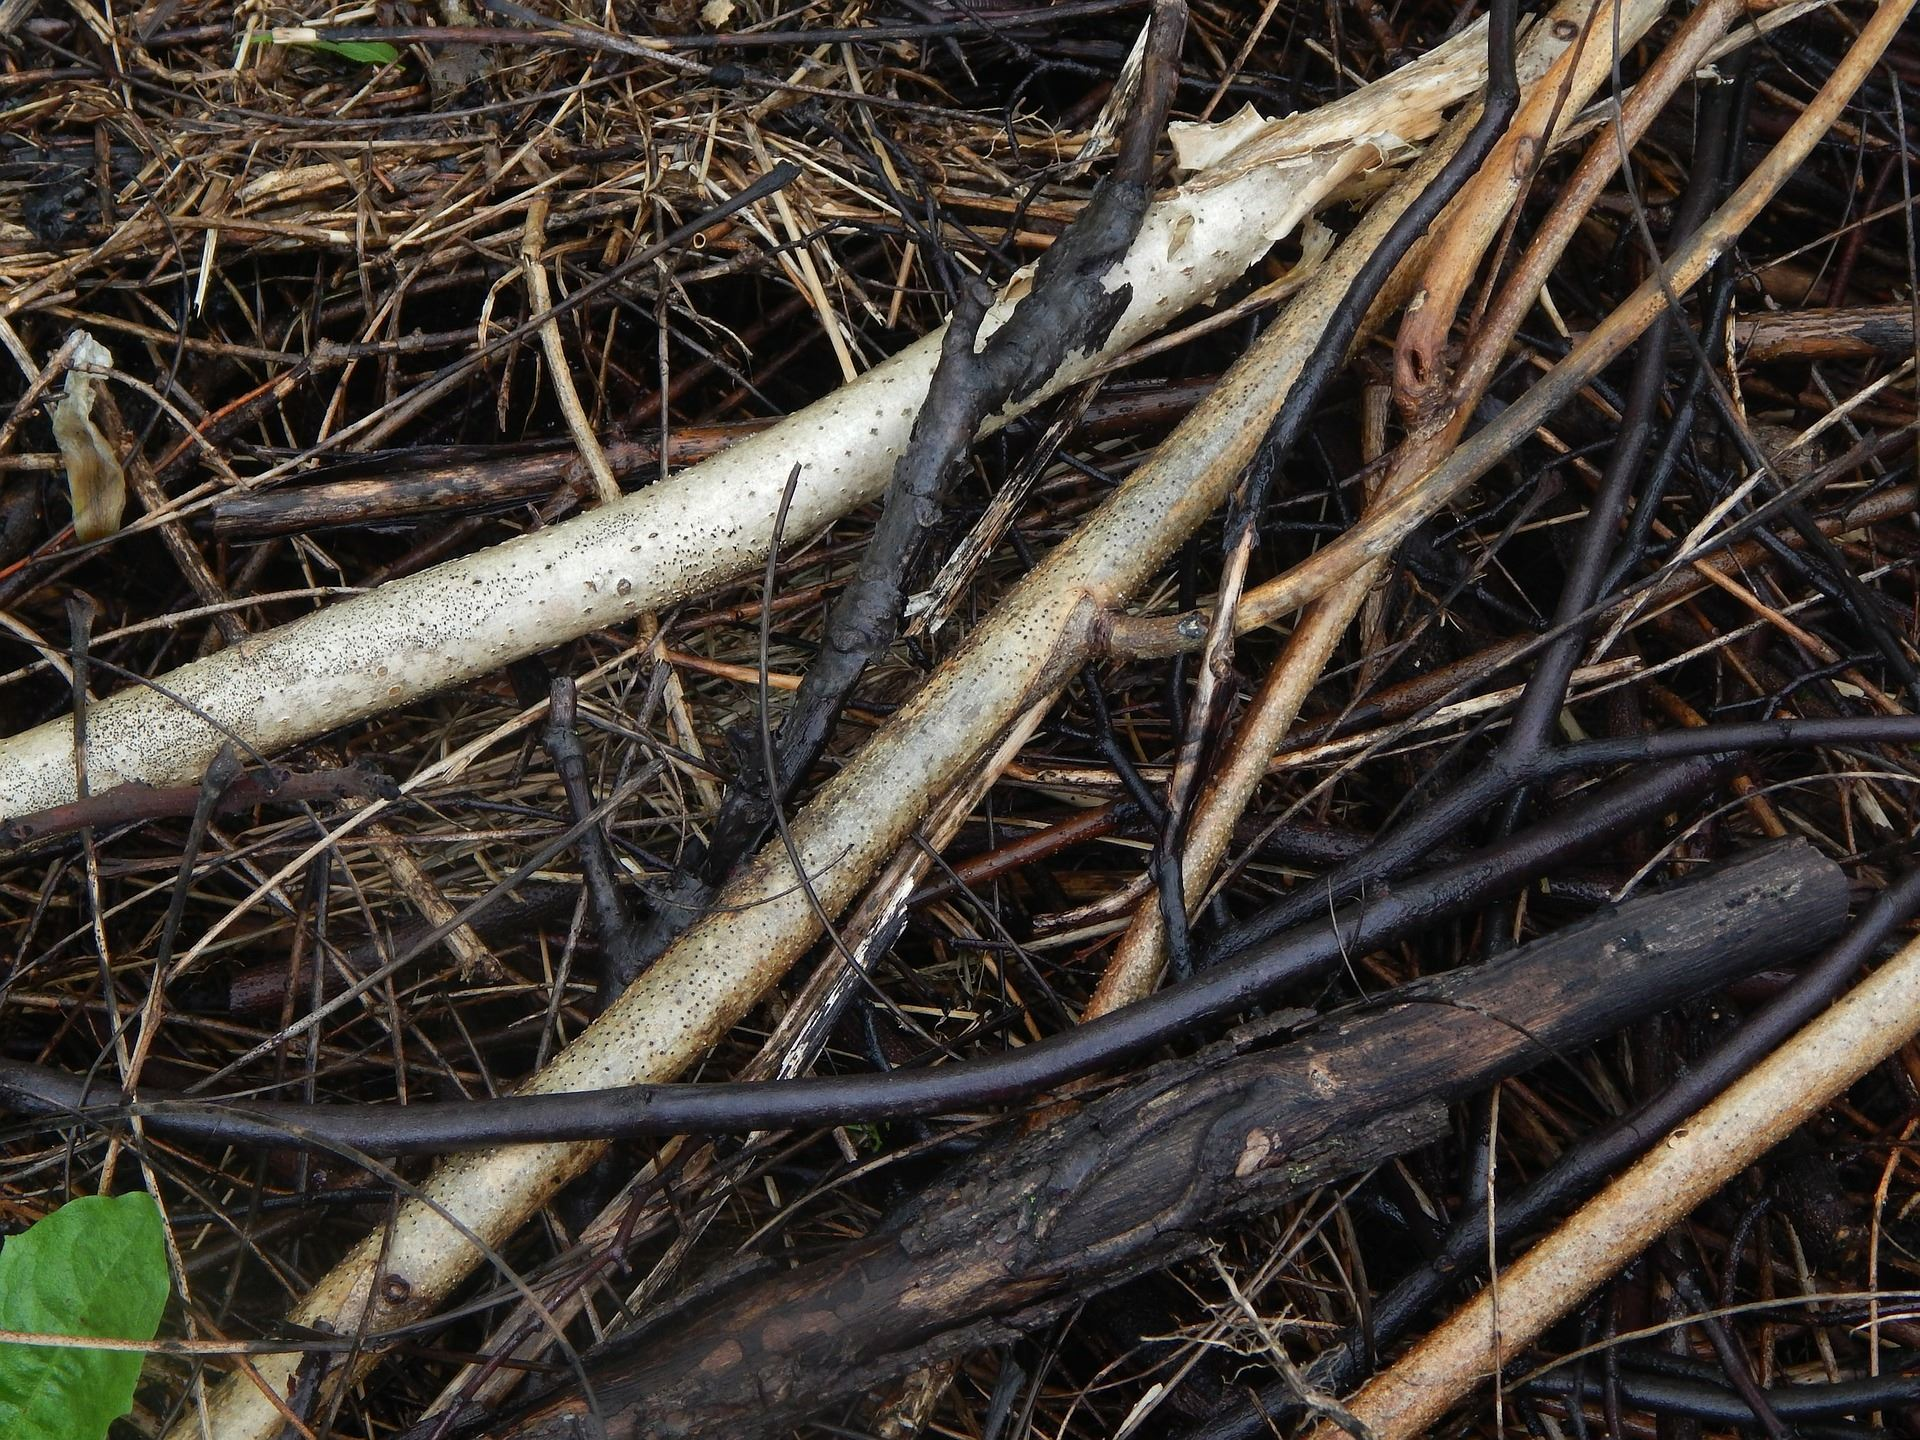 Wet yard waste including sticks, tree branches and dried grass